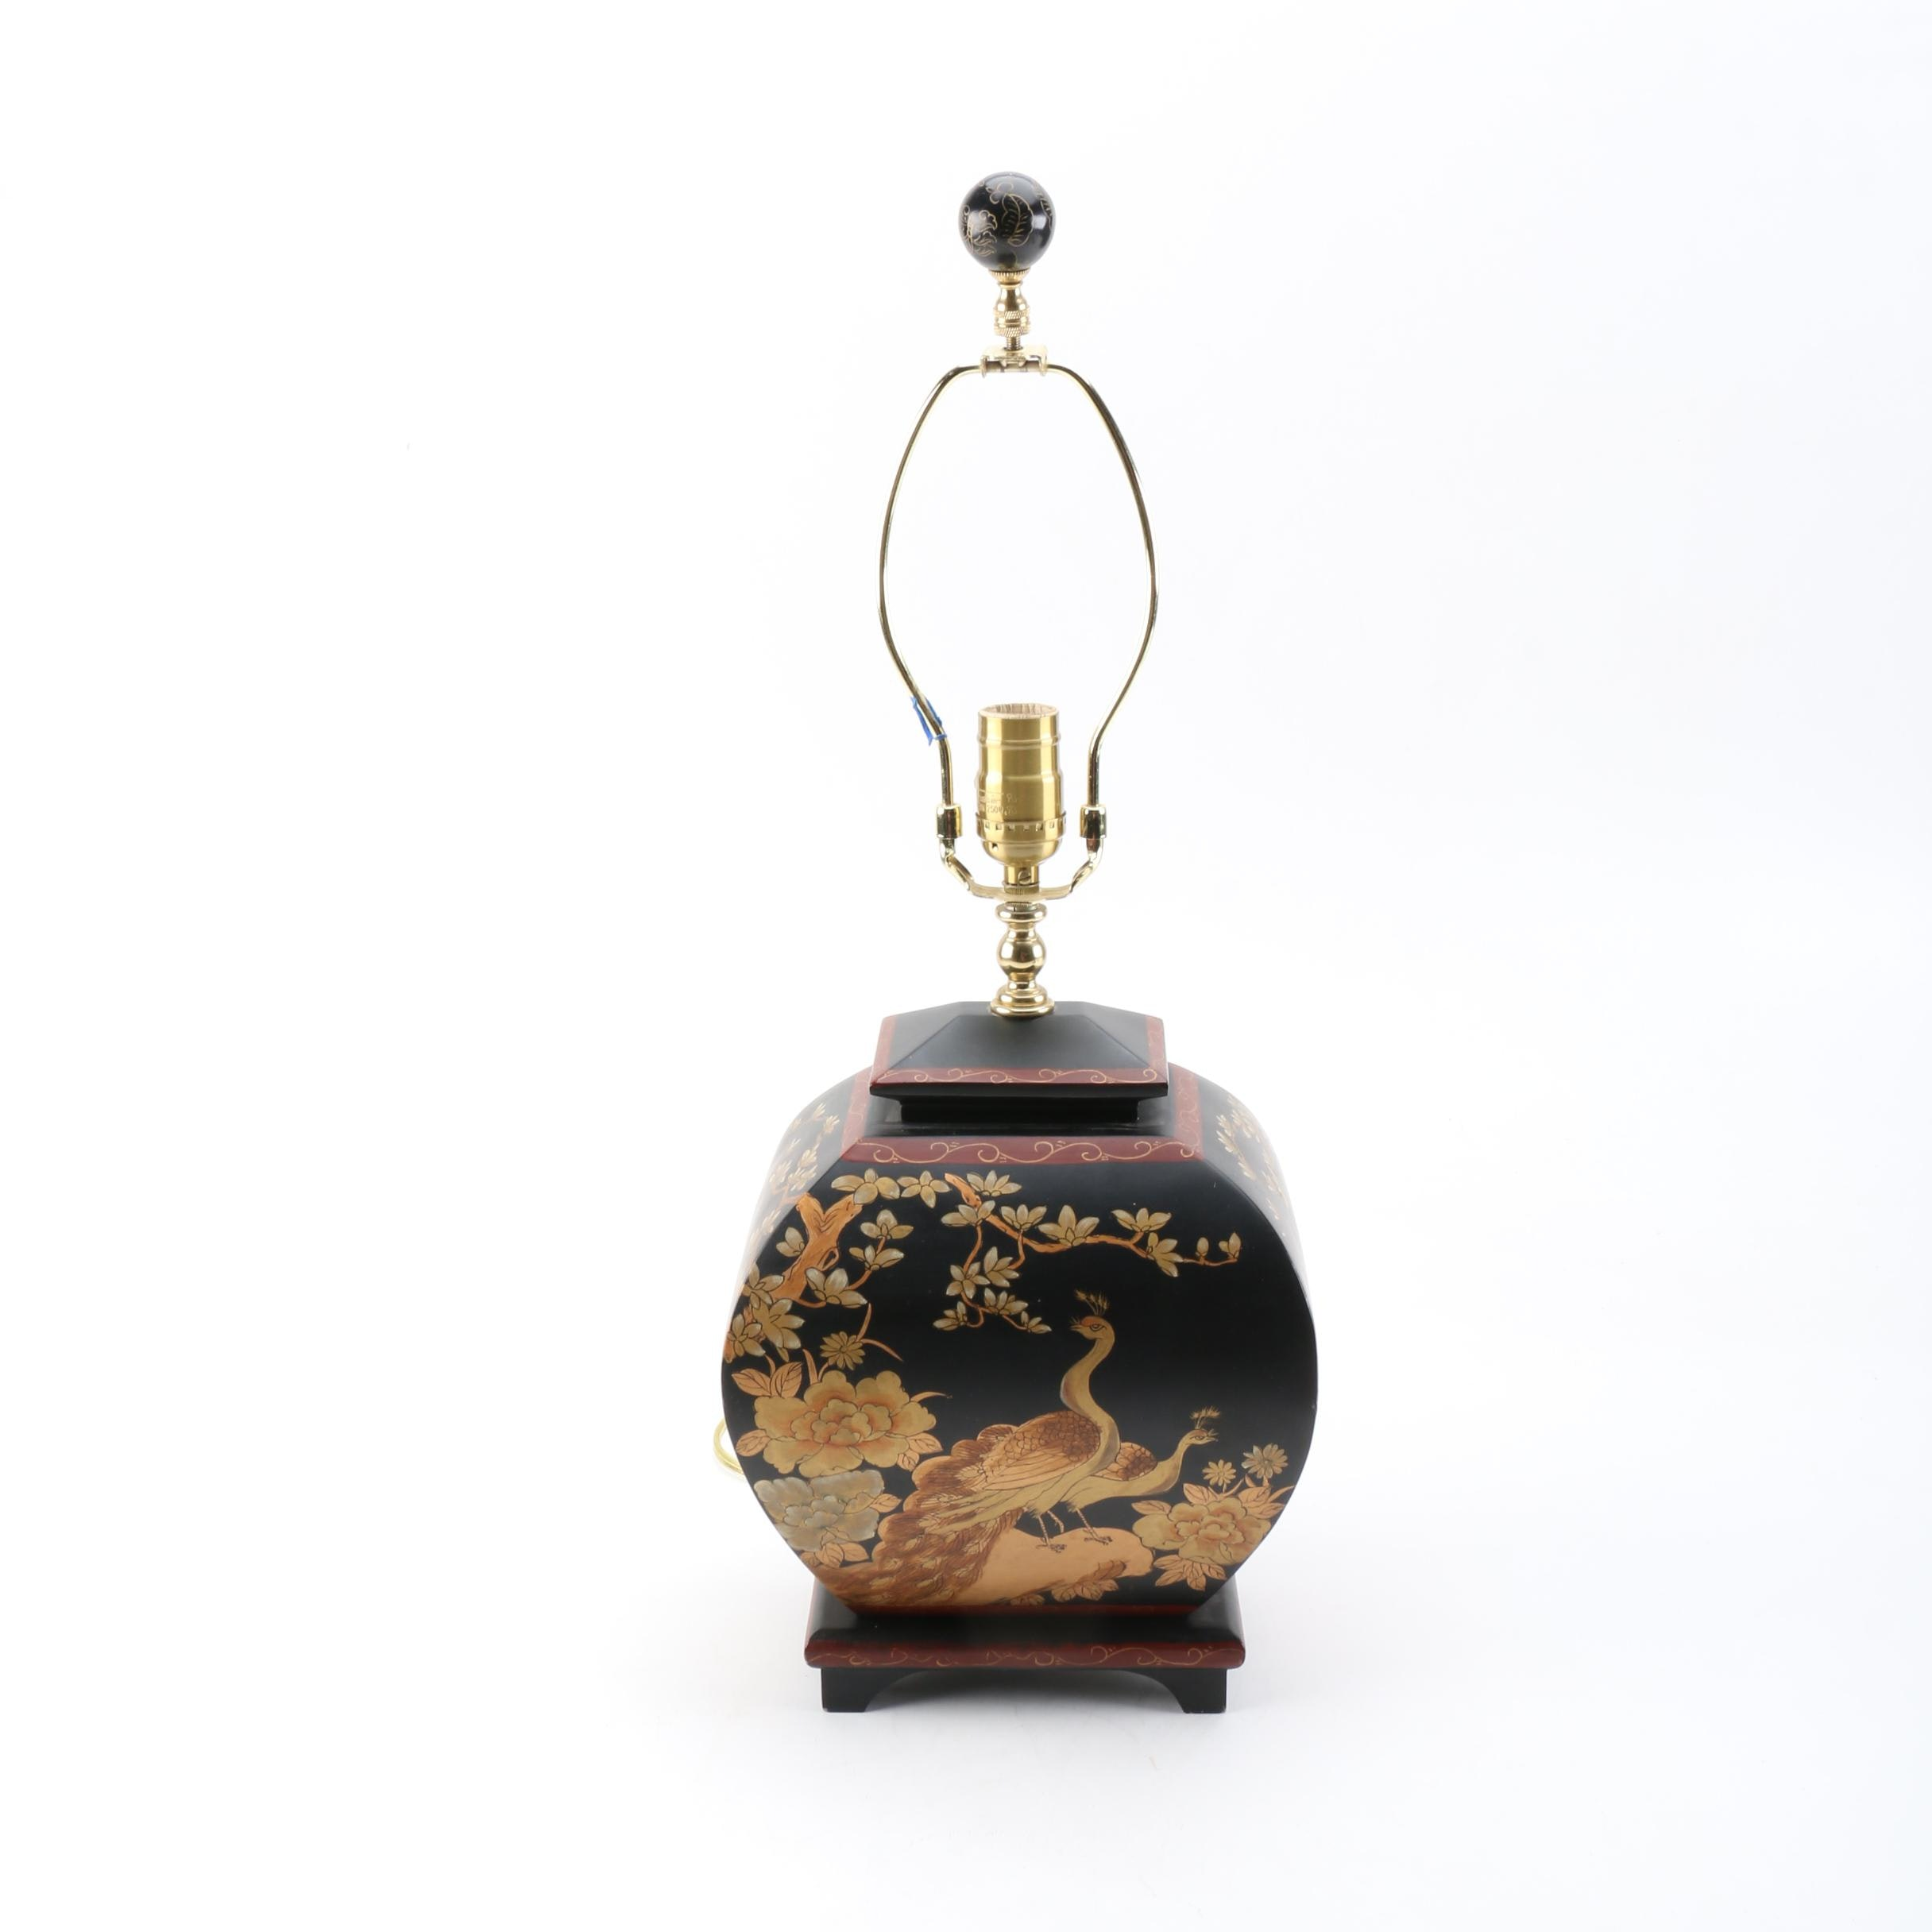 Chinoiserie Ceramic Urn Table Lamp